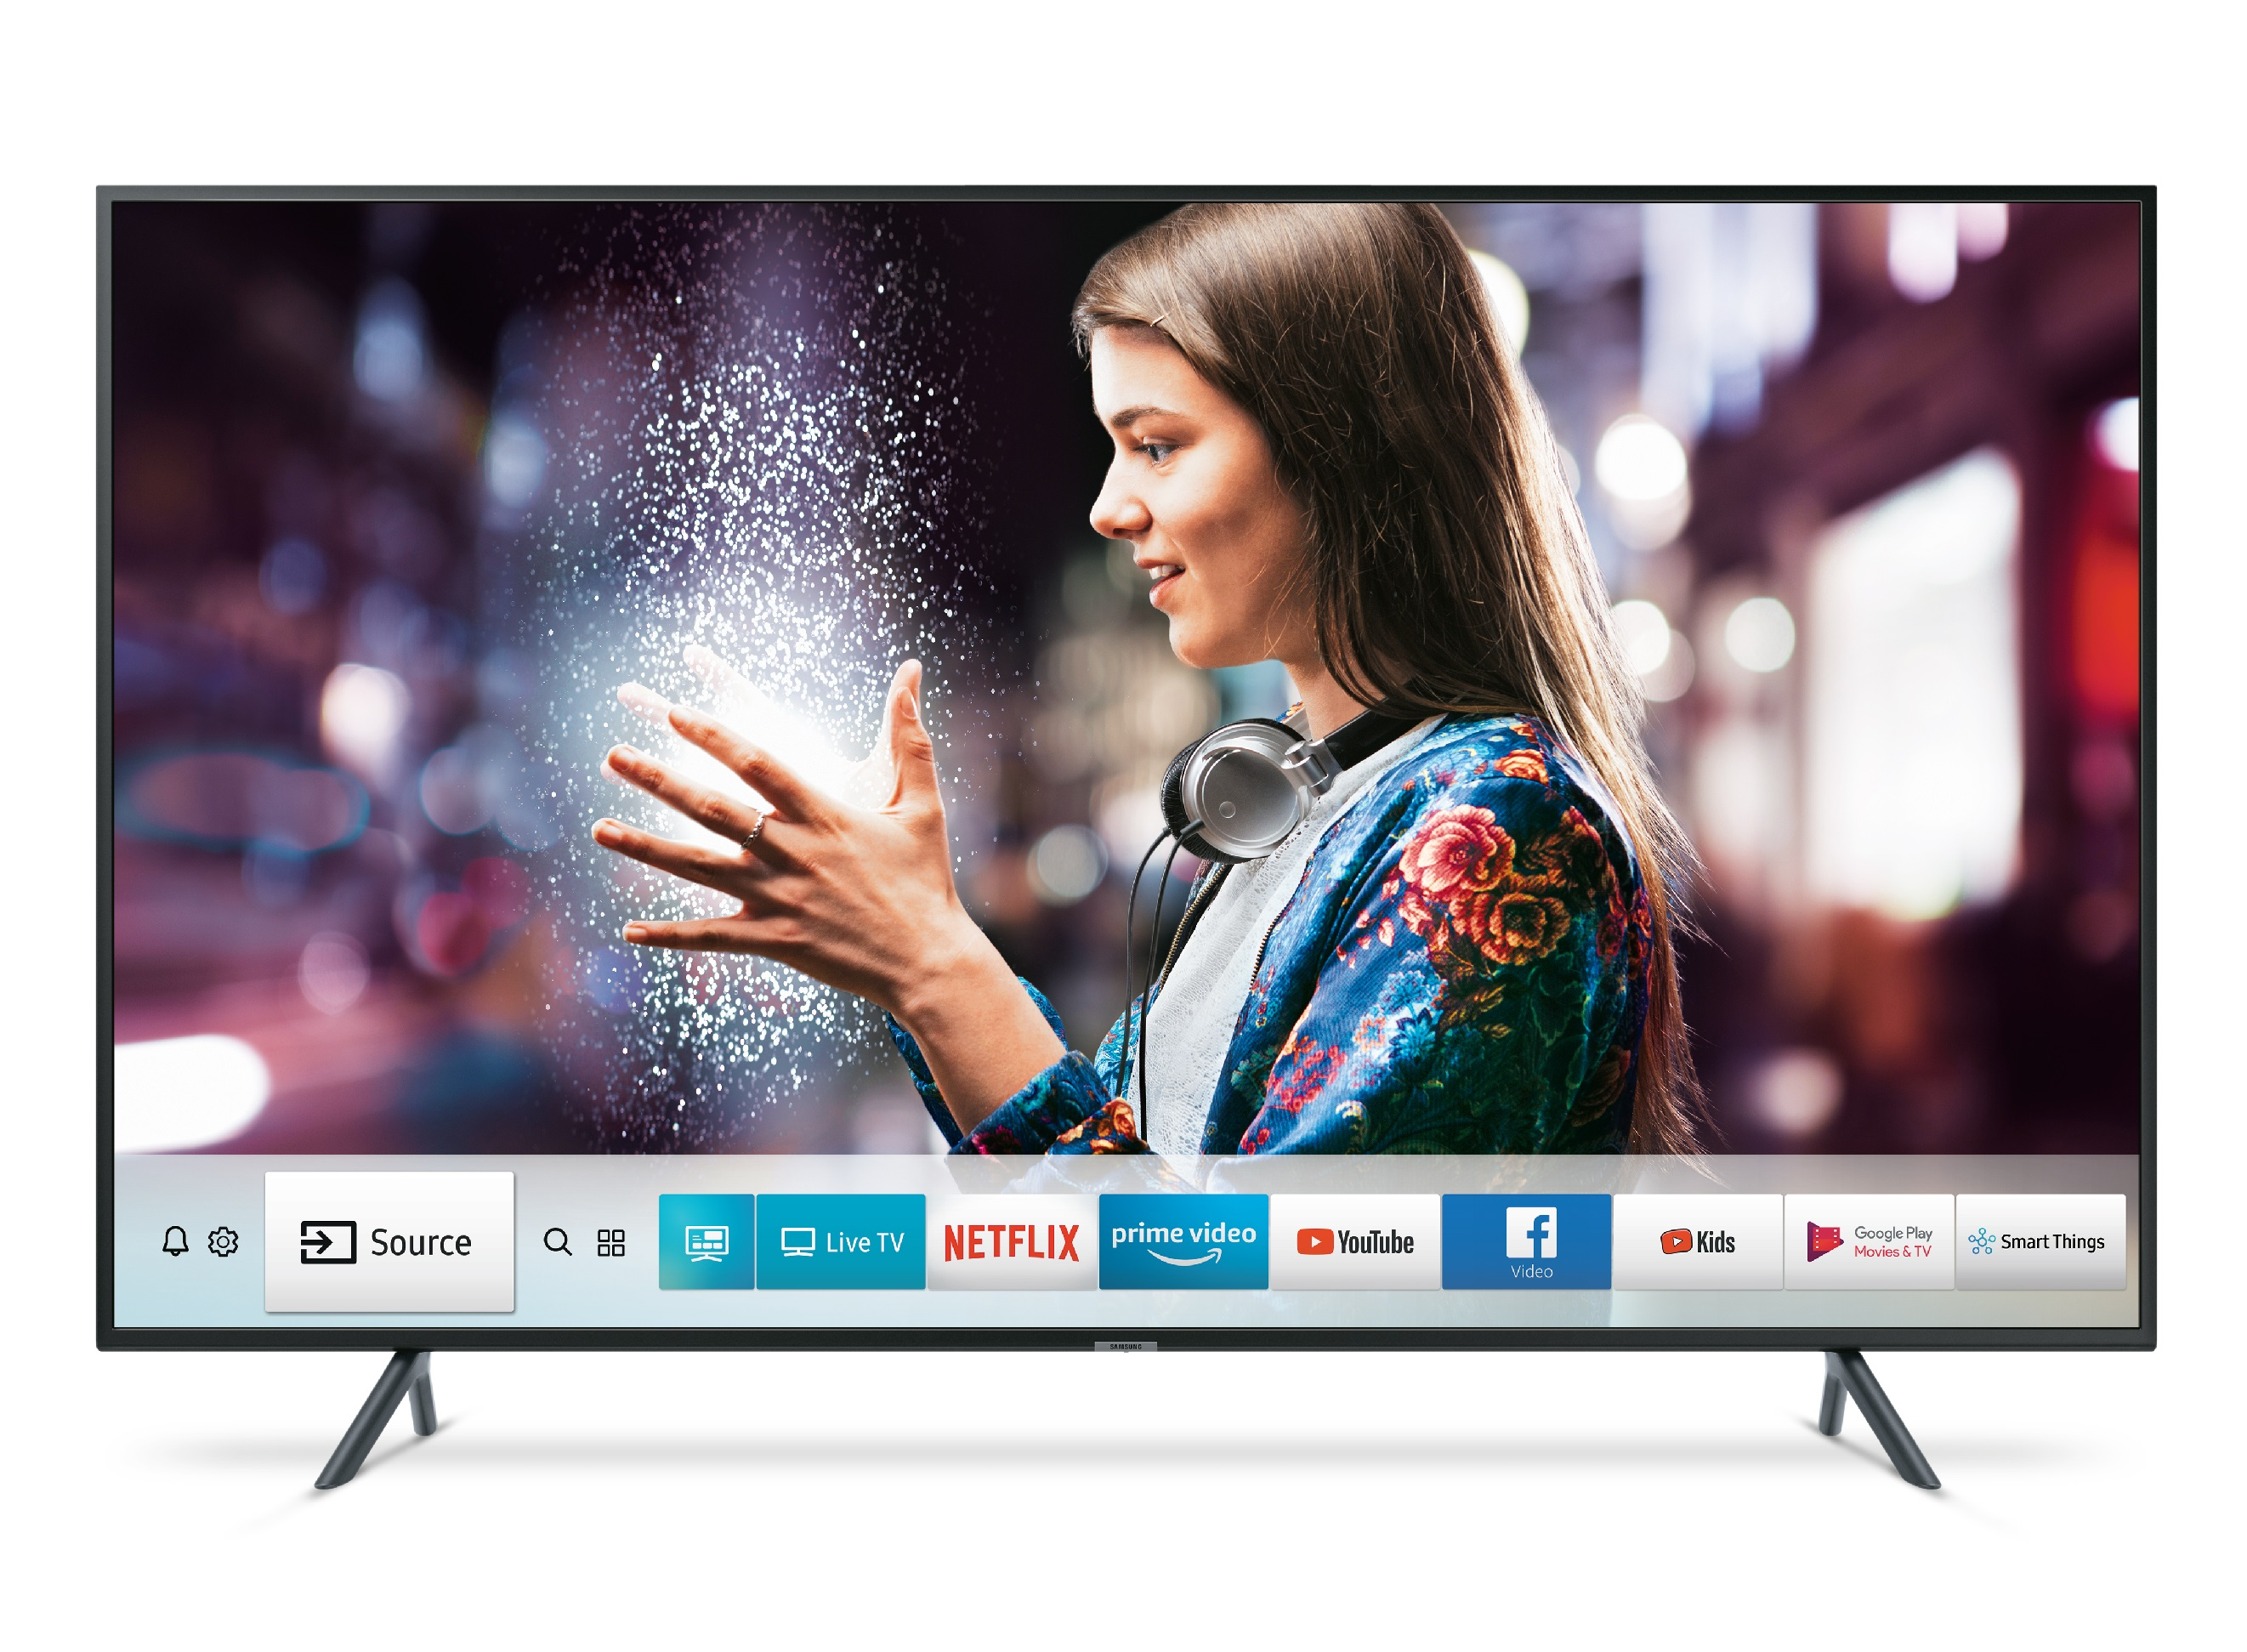 45d853229 The new Samsung Smart TVs will surprise you with never before features that  will transform your entertainment experience to a new level.